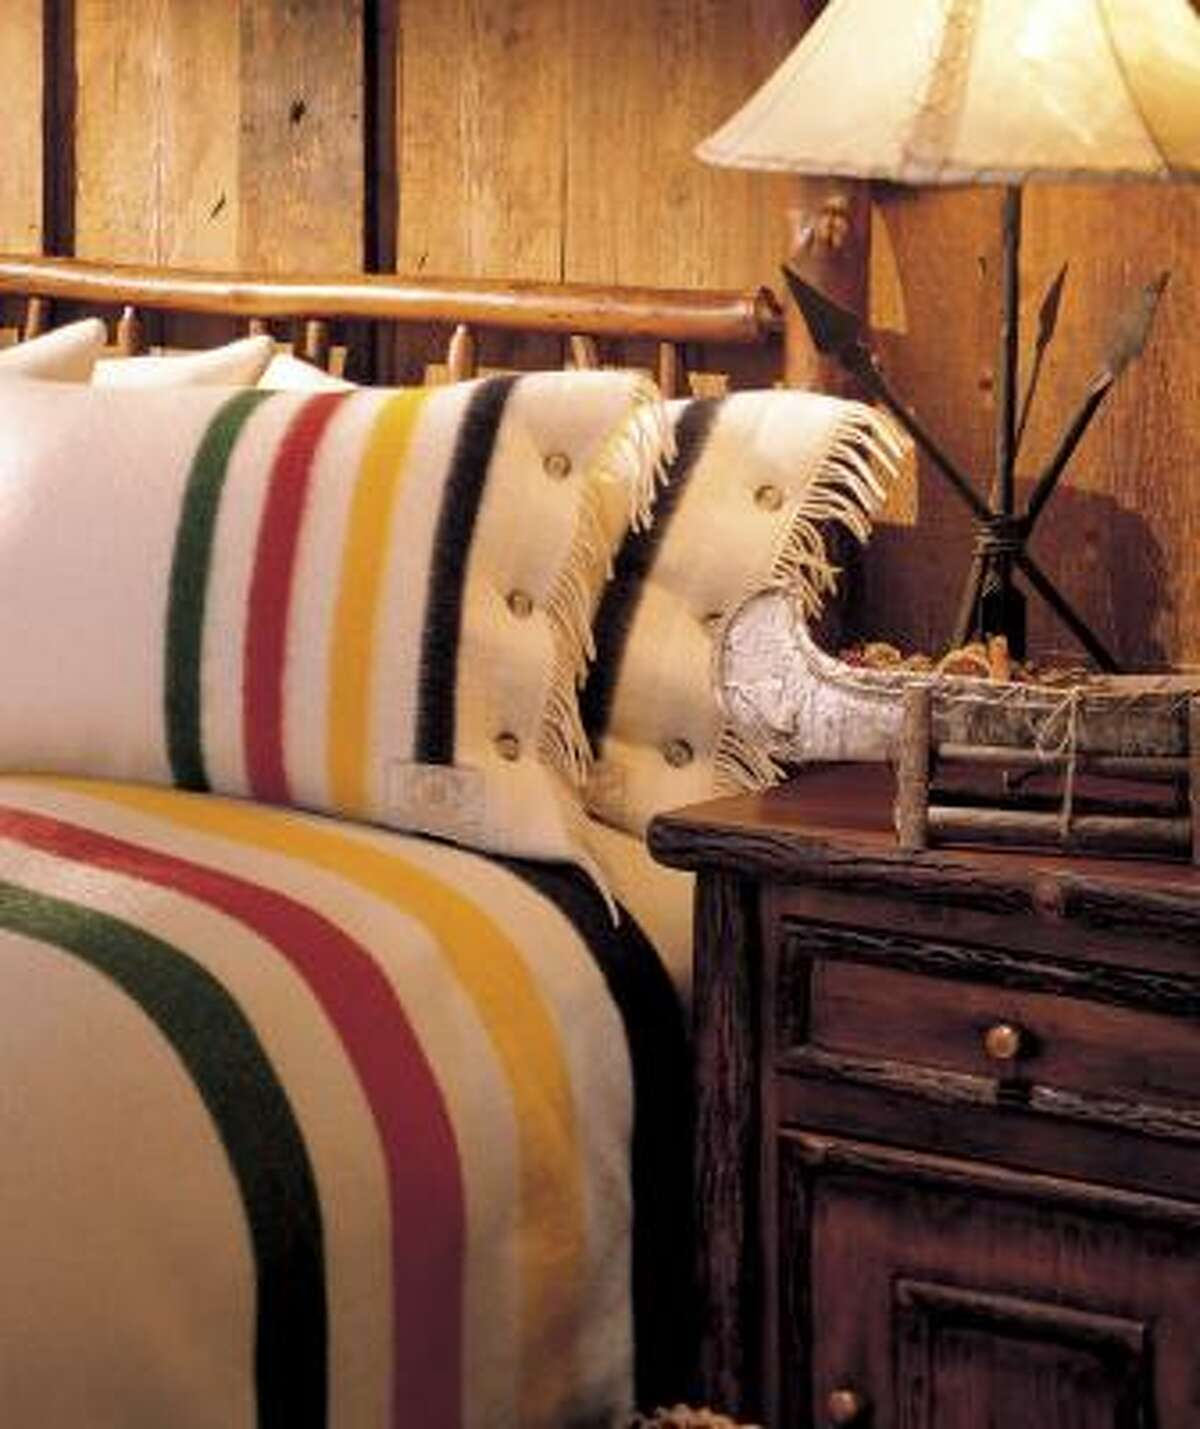 The Capote Hudson's Bay blanket and pillow sham, available at Woolrich, lend a woodsy beauty to a bedroom.